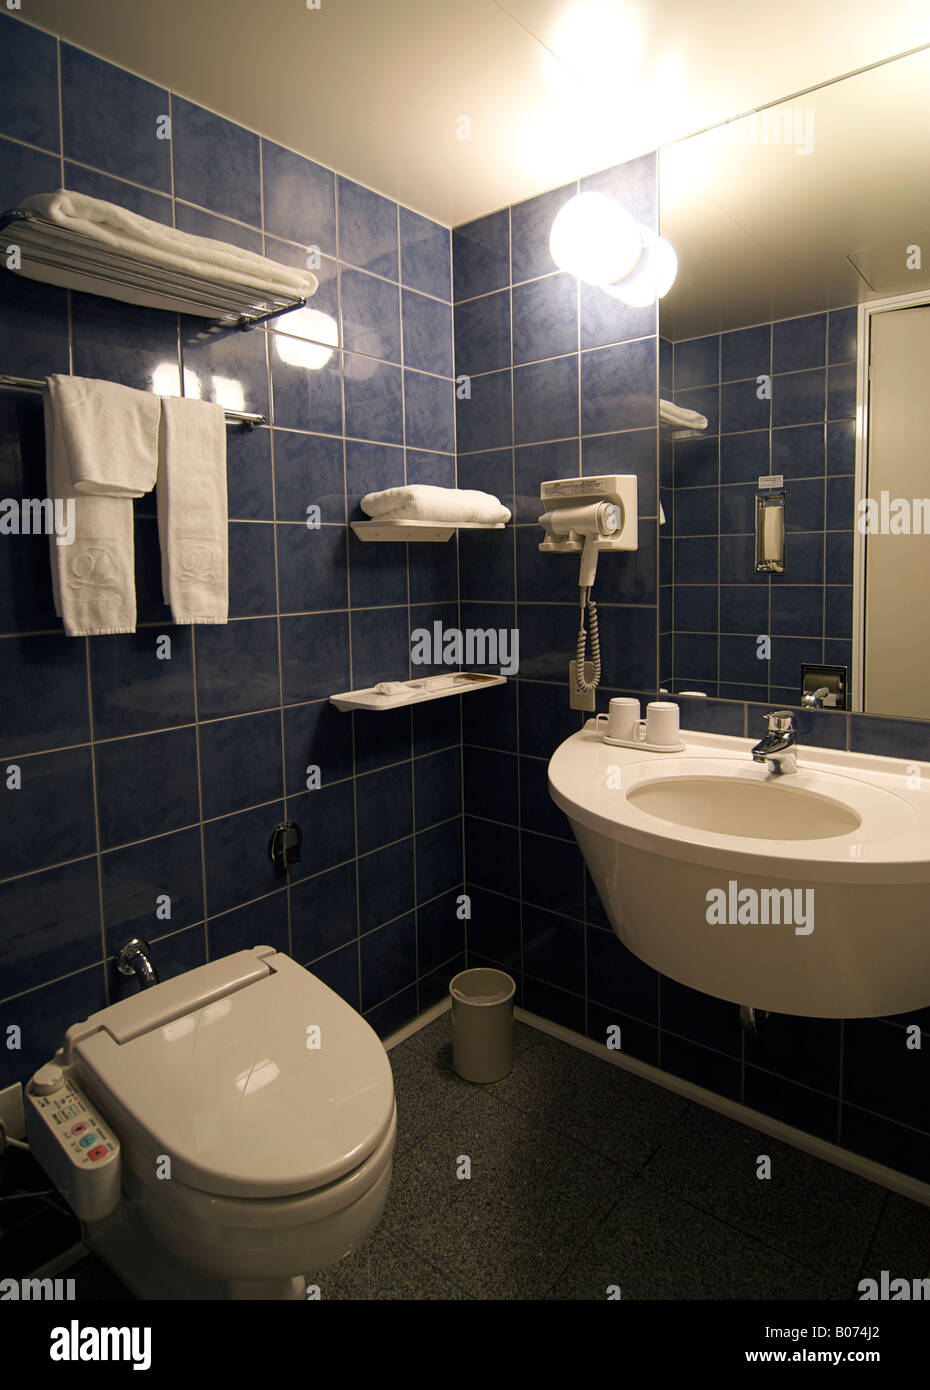 compact toilet stock photos & compact toilet stock images - alamy